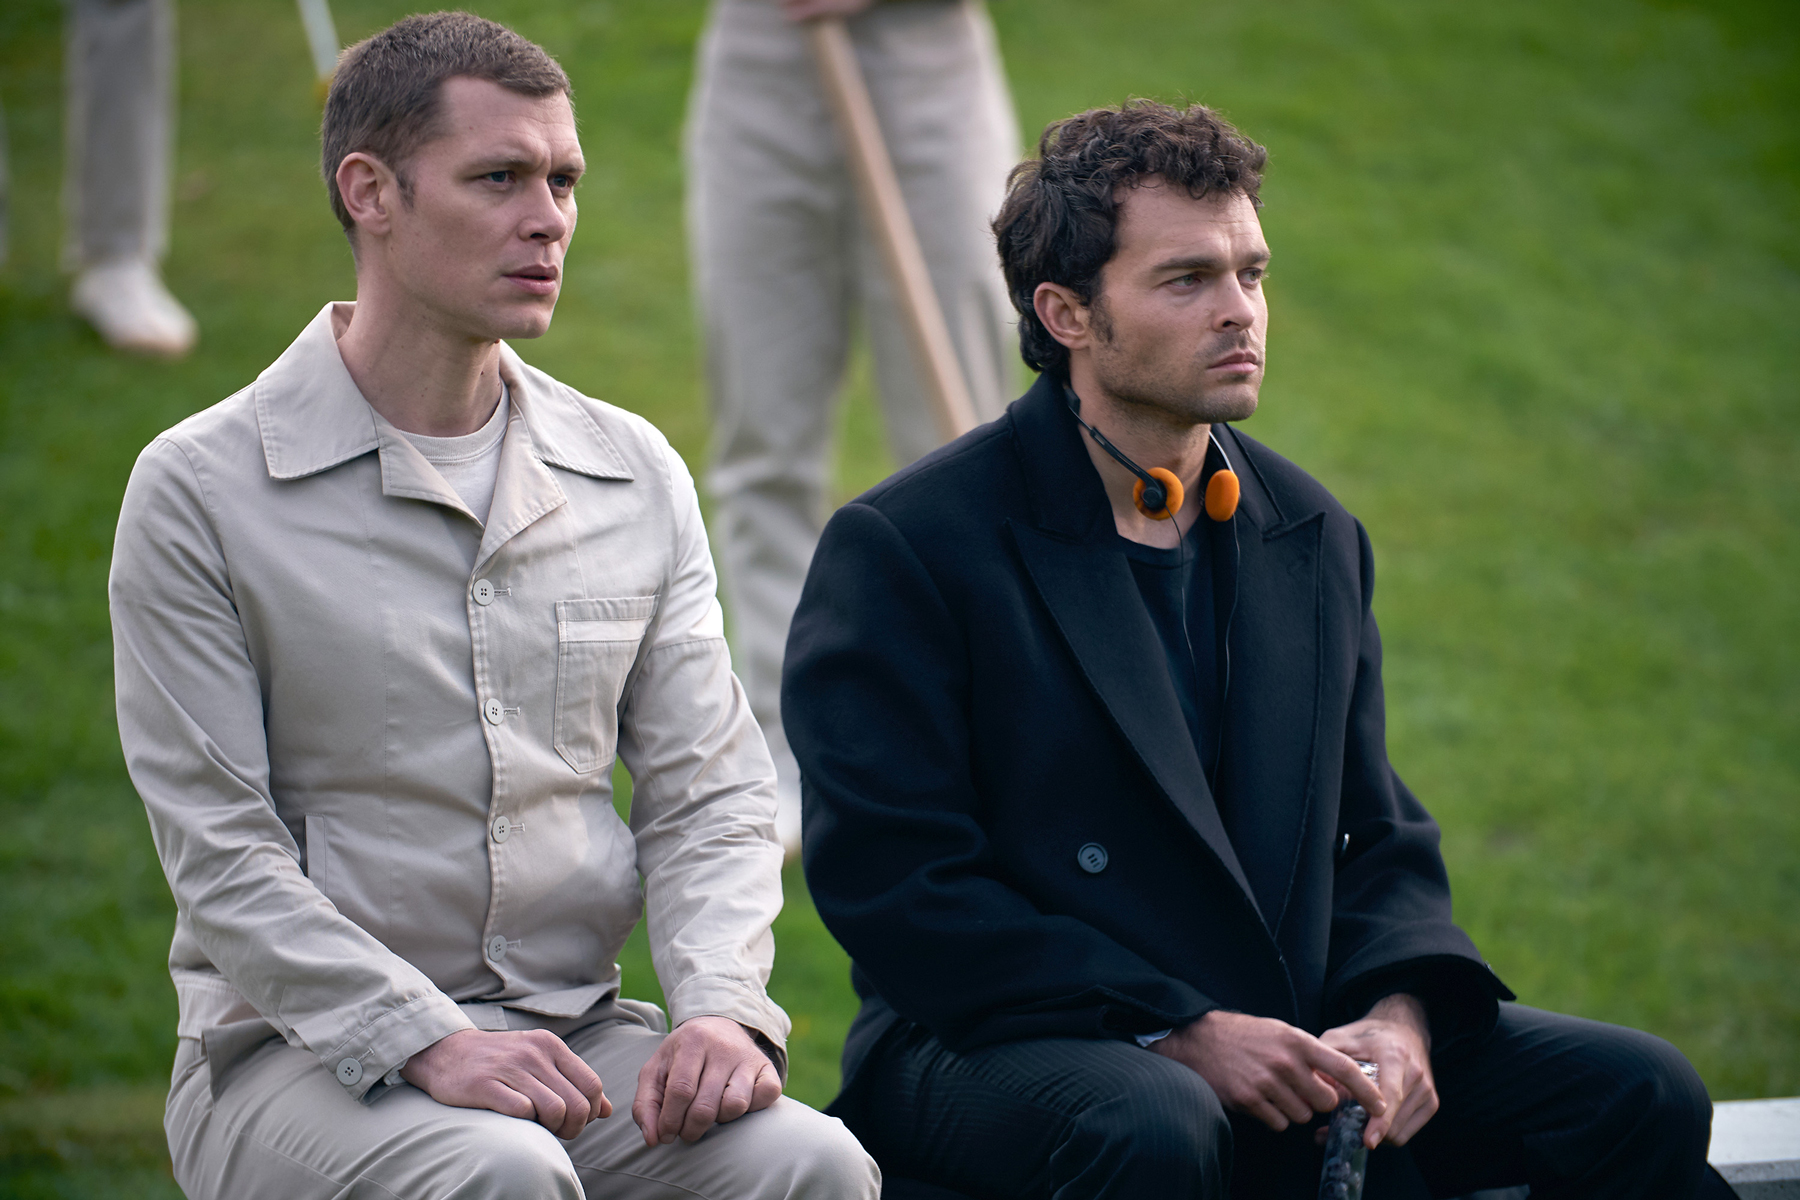 (l-r) Joseph Morgan as Cjack 60/57, Alden Ehrenreich as John the Savage.